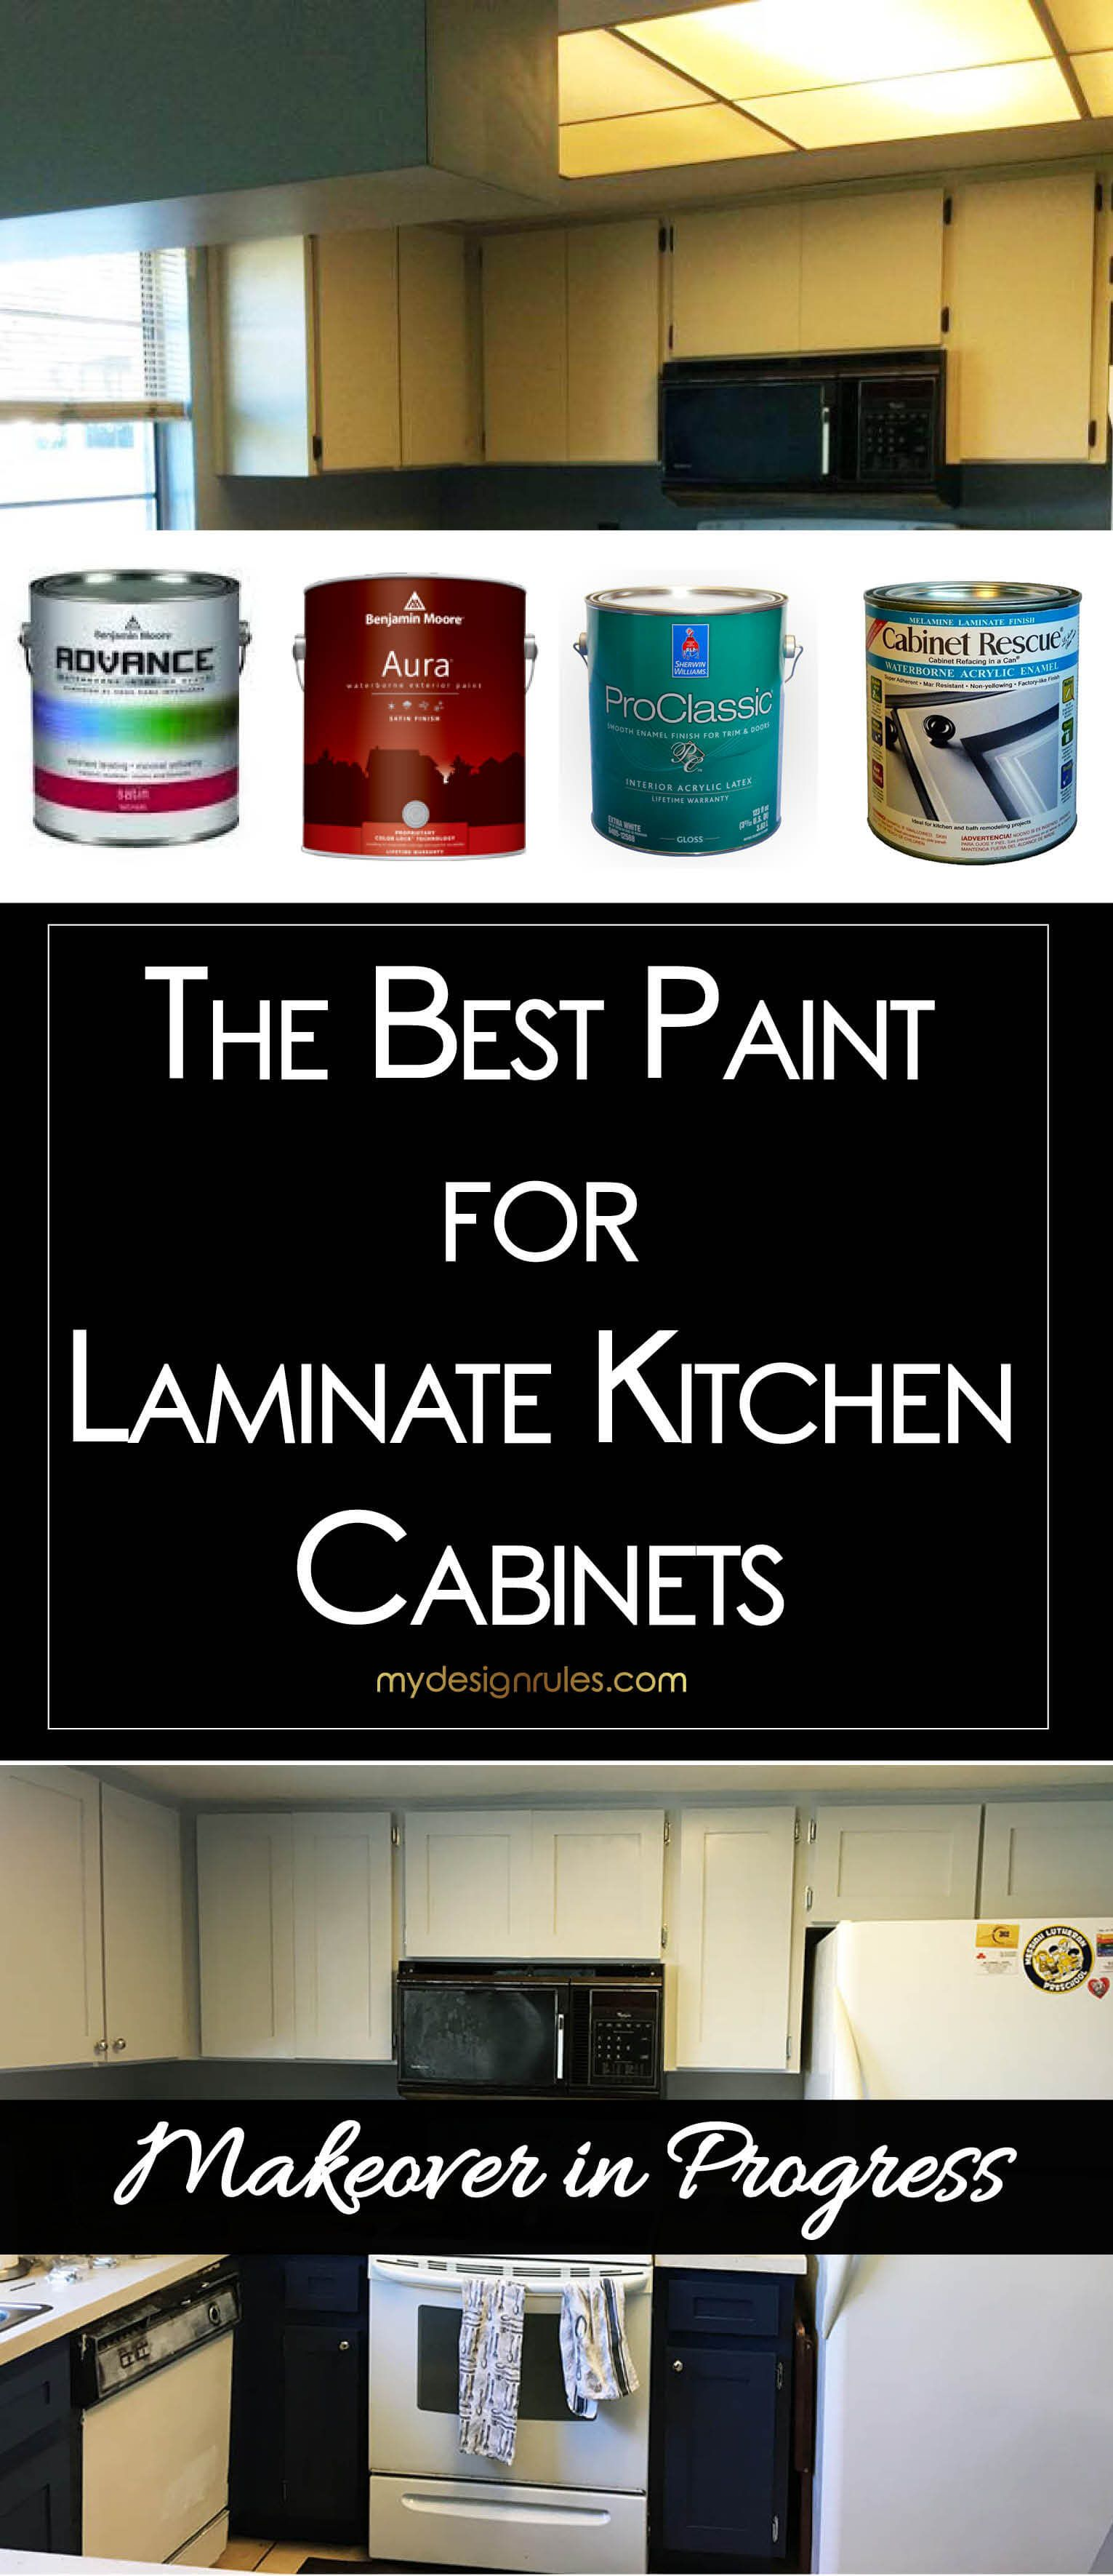 What's the Best Paint for Laminate Cabinets? (With images ...